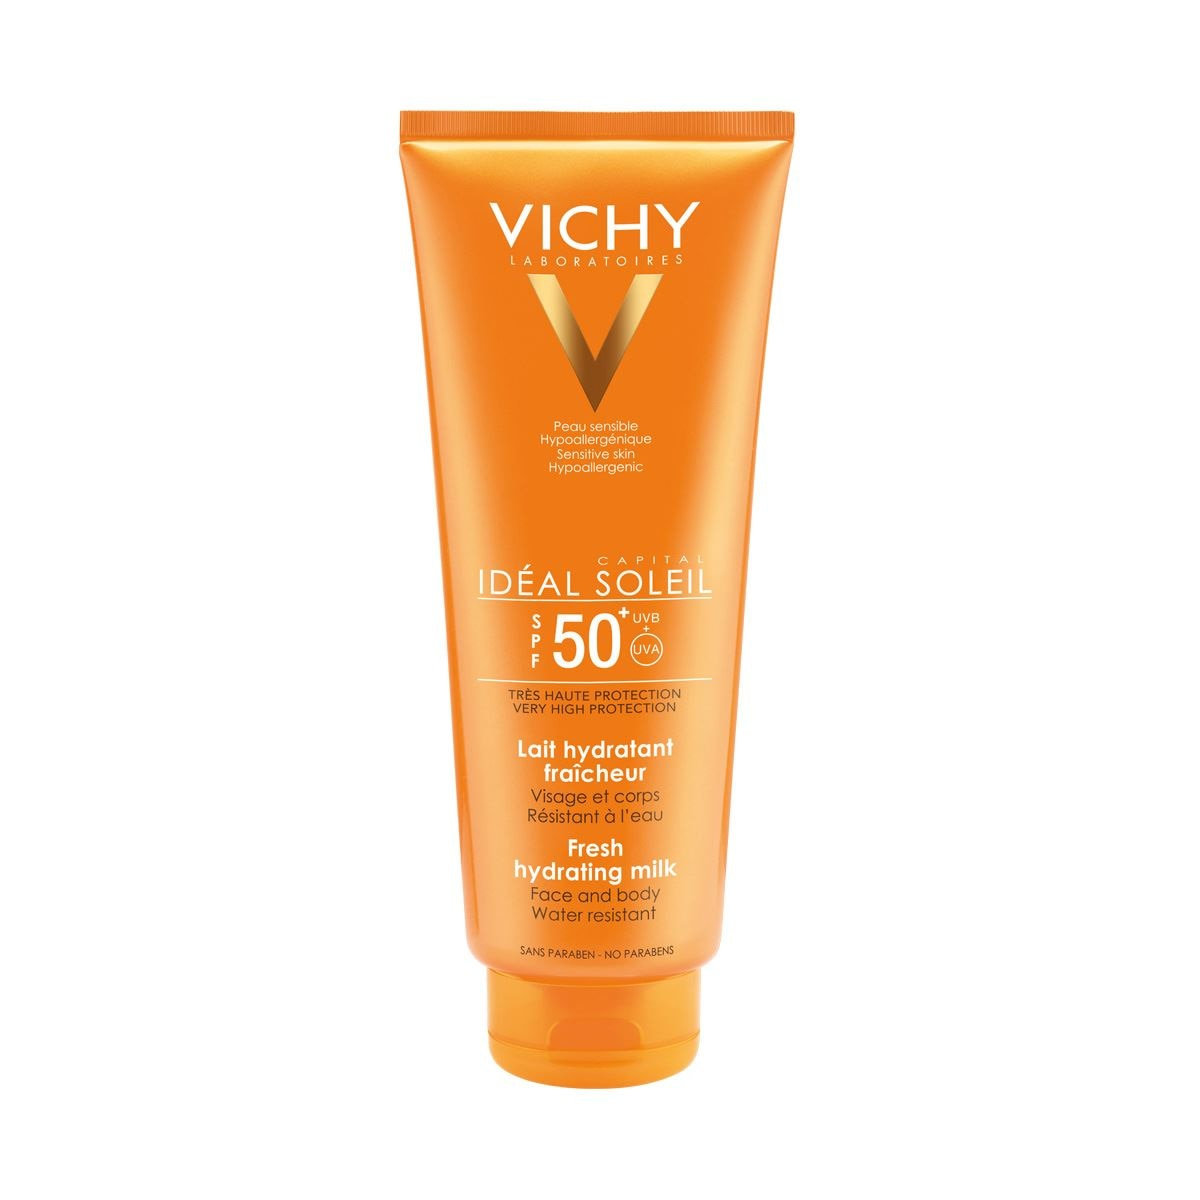 Vichy Ideal Soleil Family